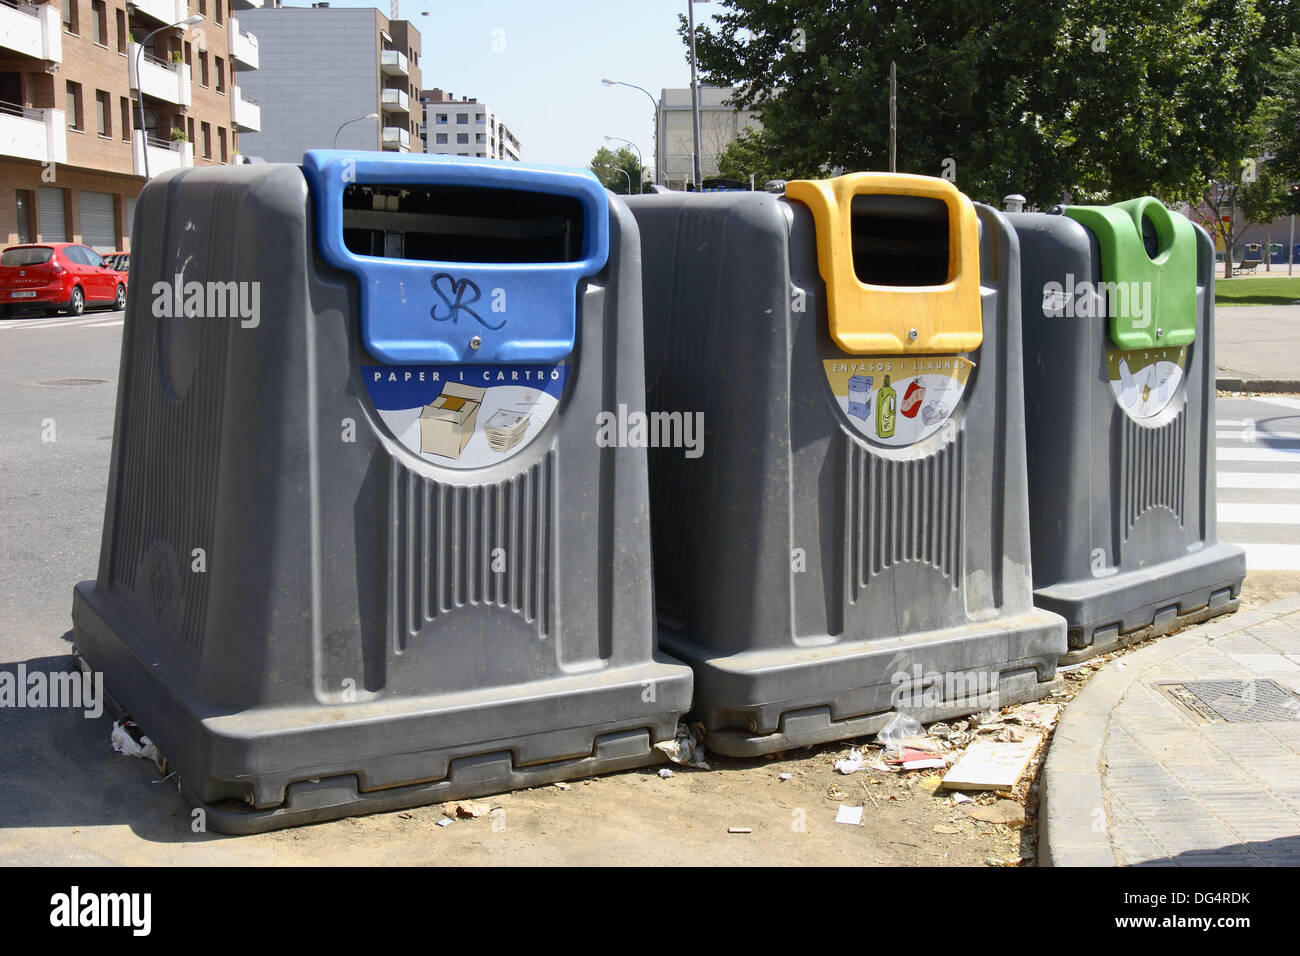 Recycling containers for glass, paper and plastic. Lleida, Segria, Catalonia, Spain Stock Photo